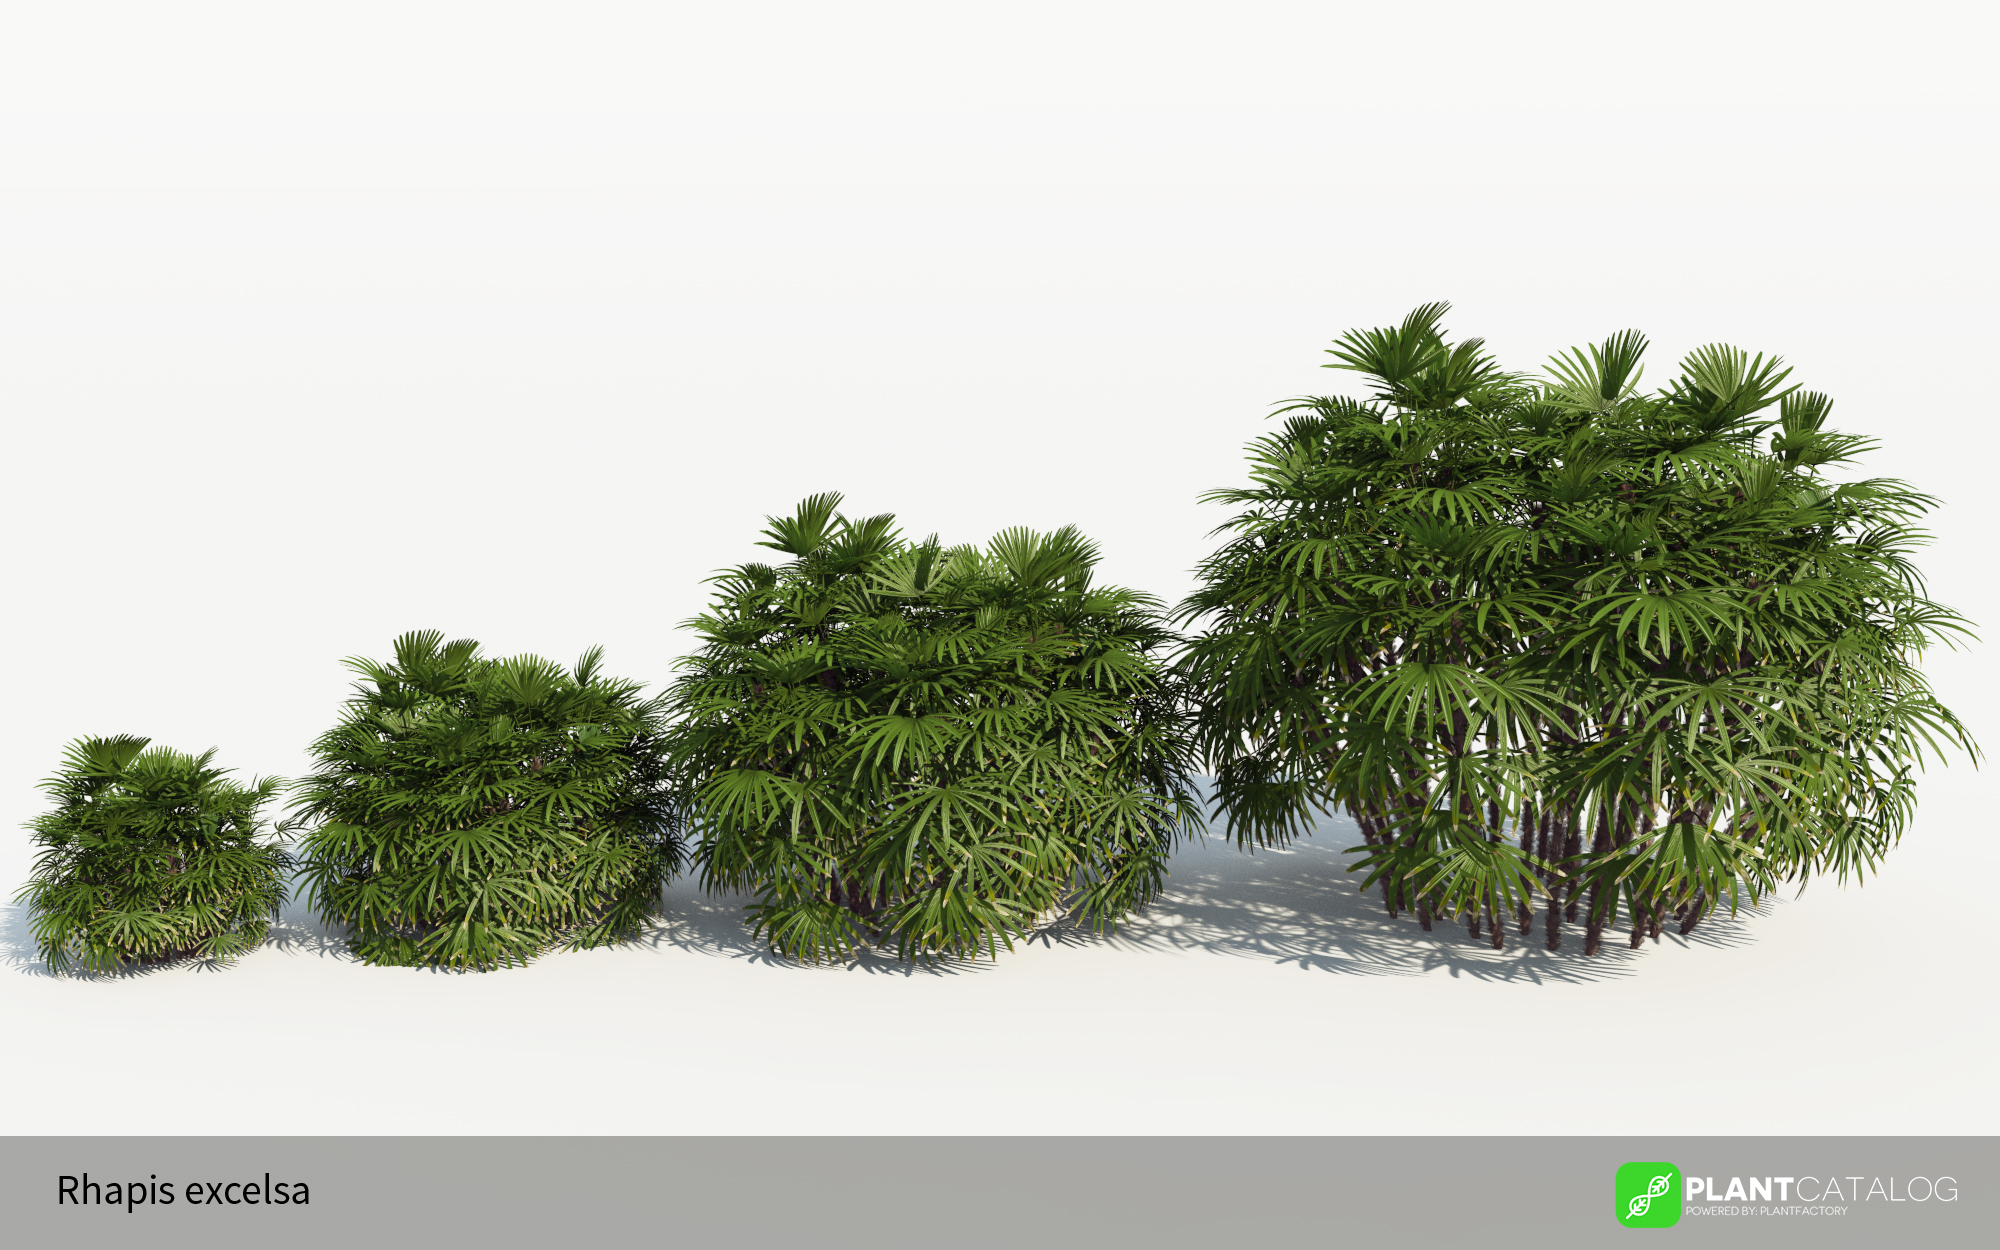 3D model of the Bamboo palm - Rhapis excelsa - from the PlantCatalog, rendered in VUE